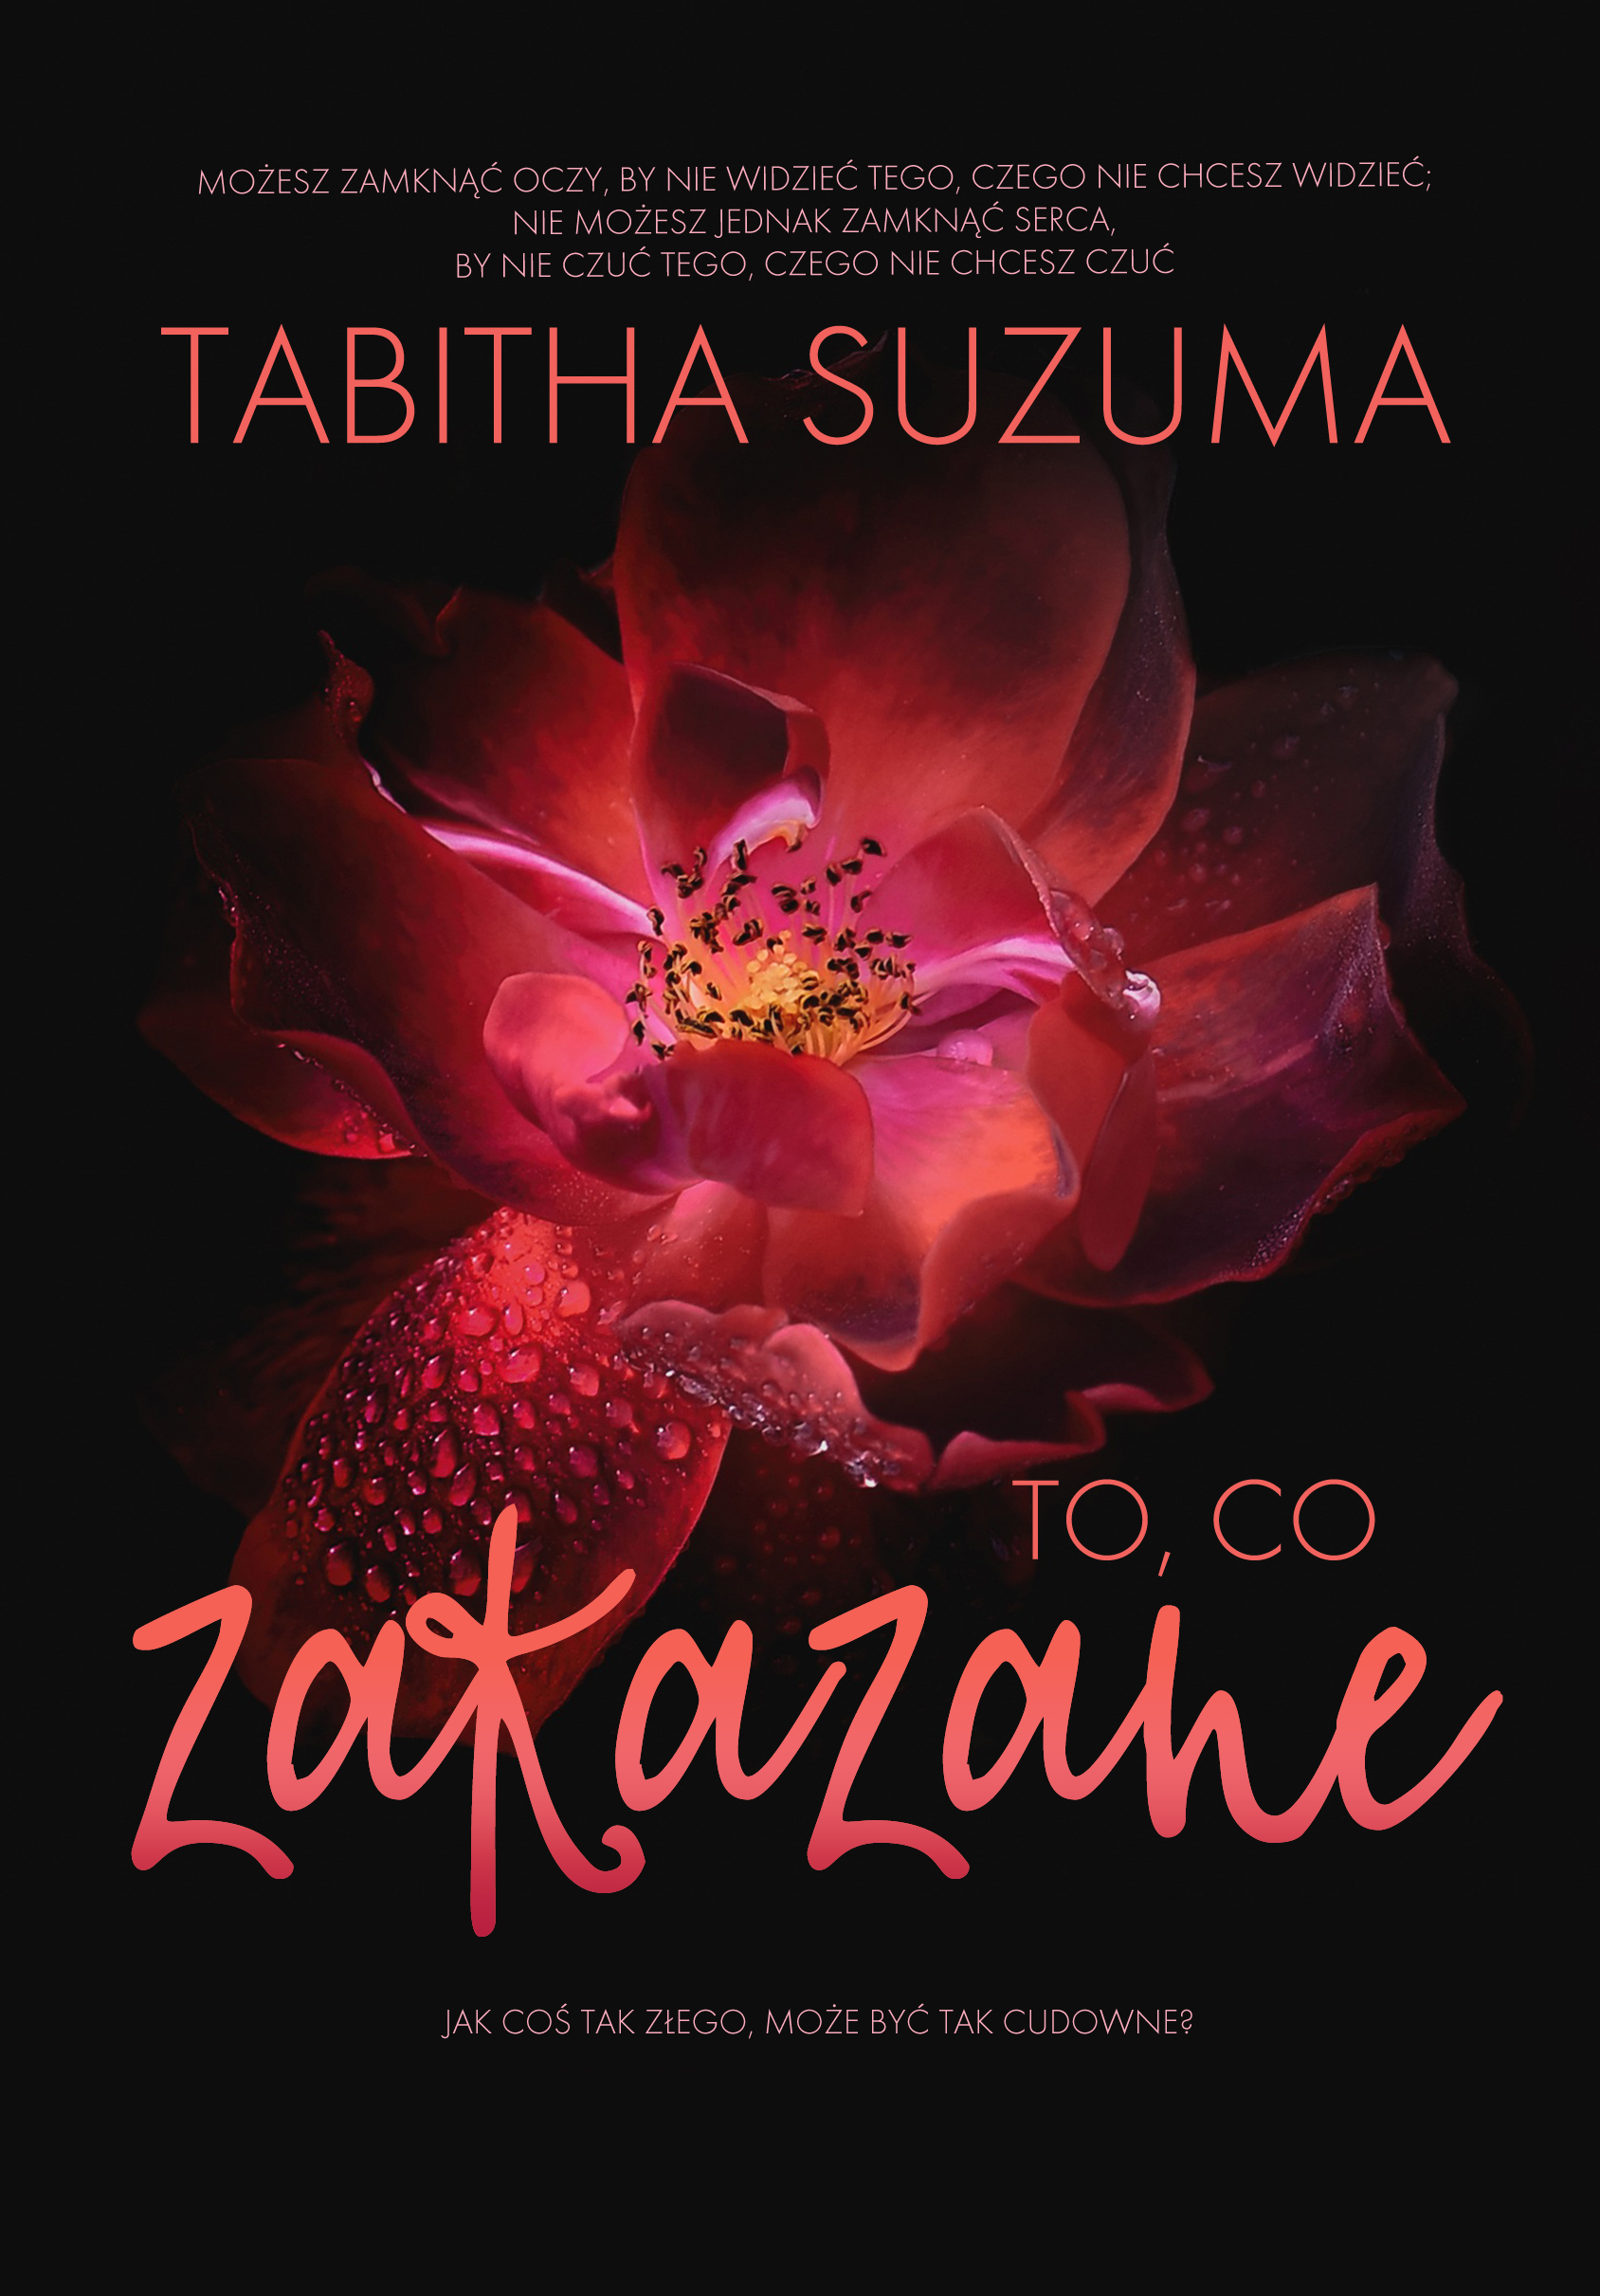 """To, co zakazane"", Tabitha Suzuma"